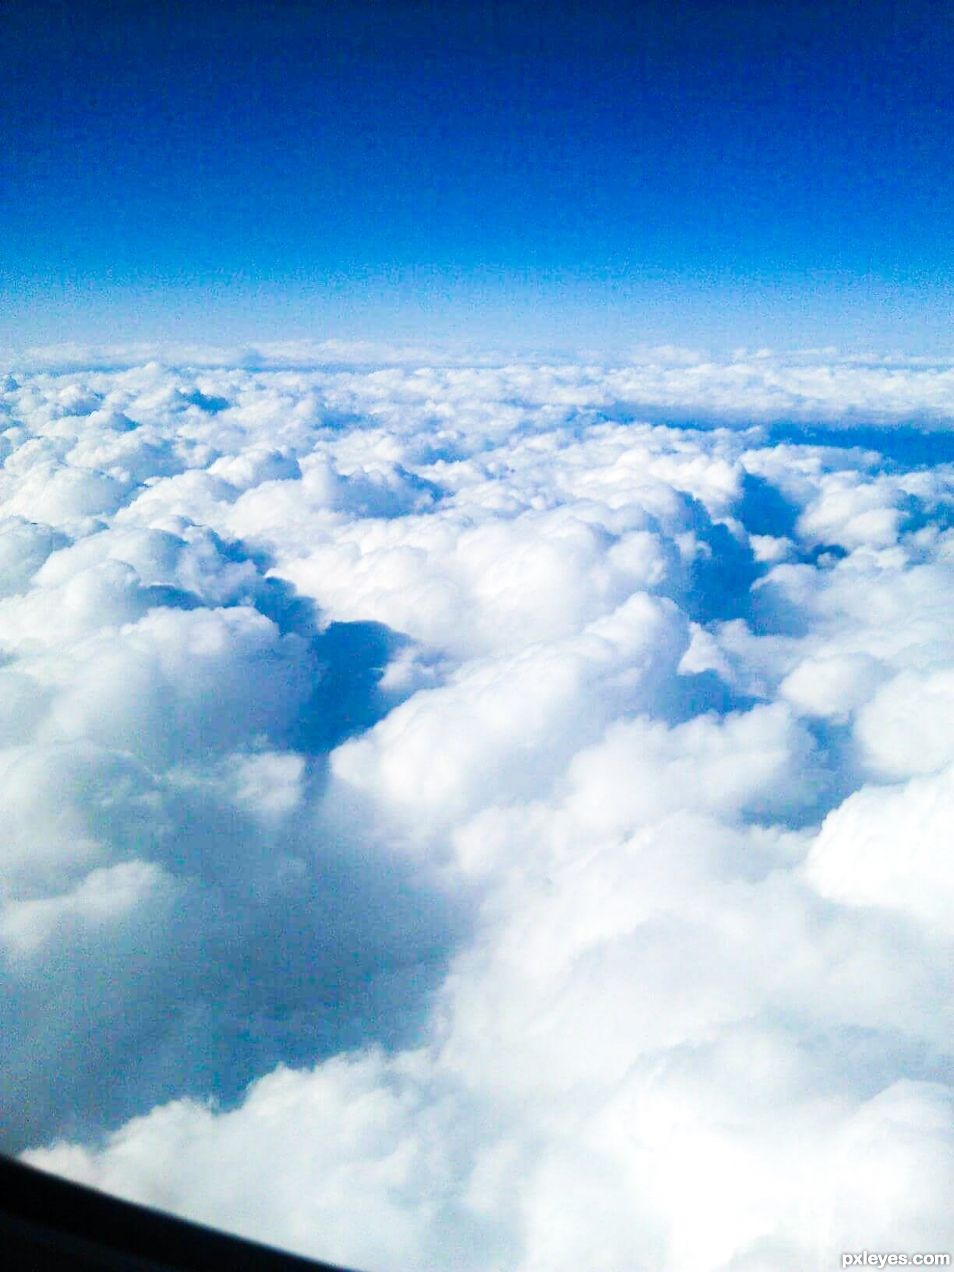 Over the clouds and far away